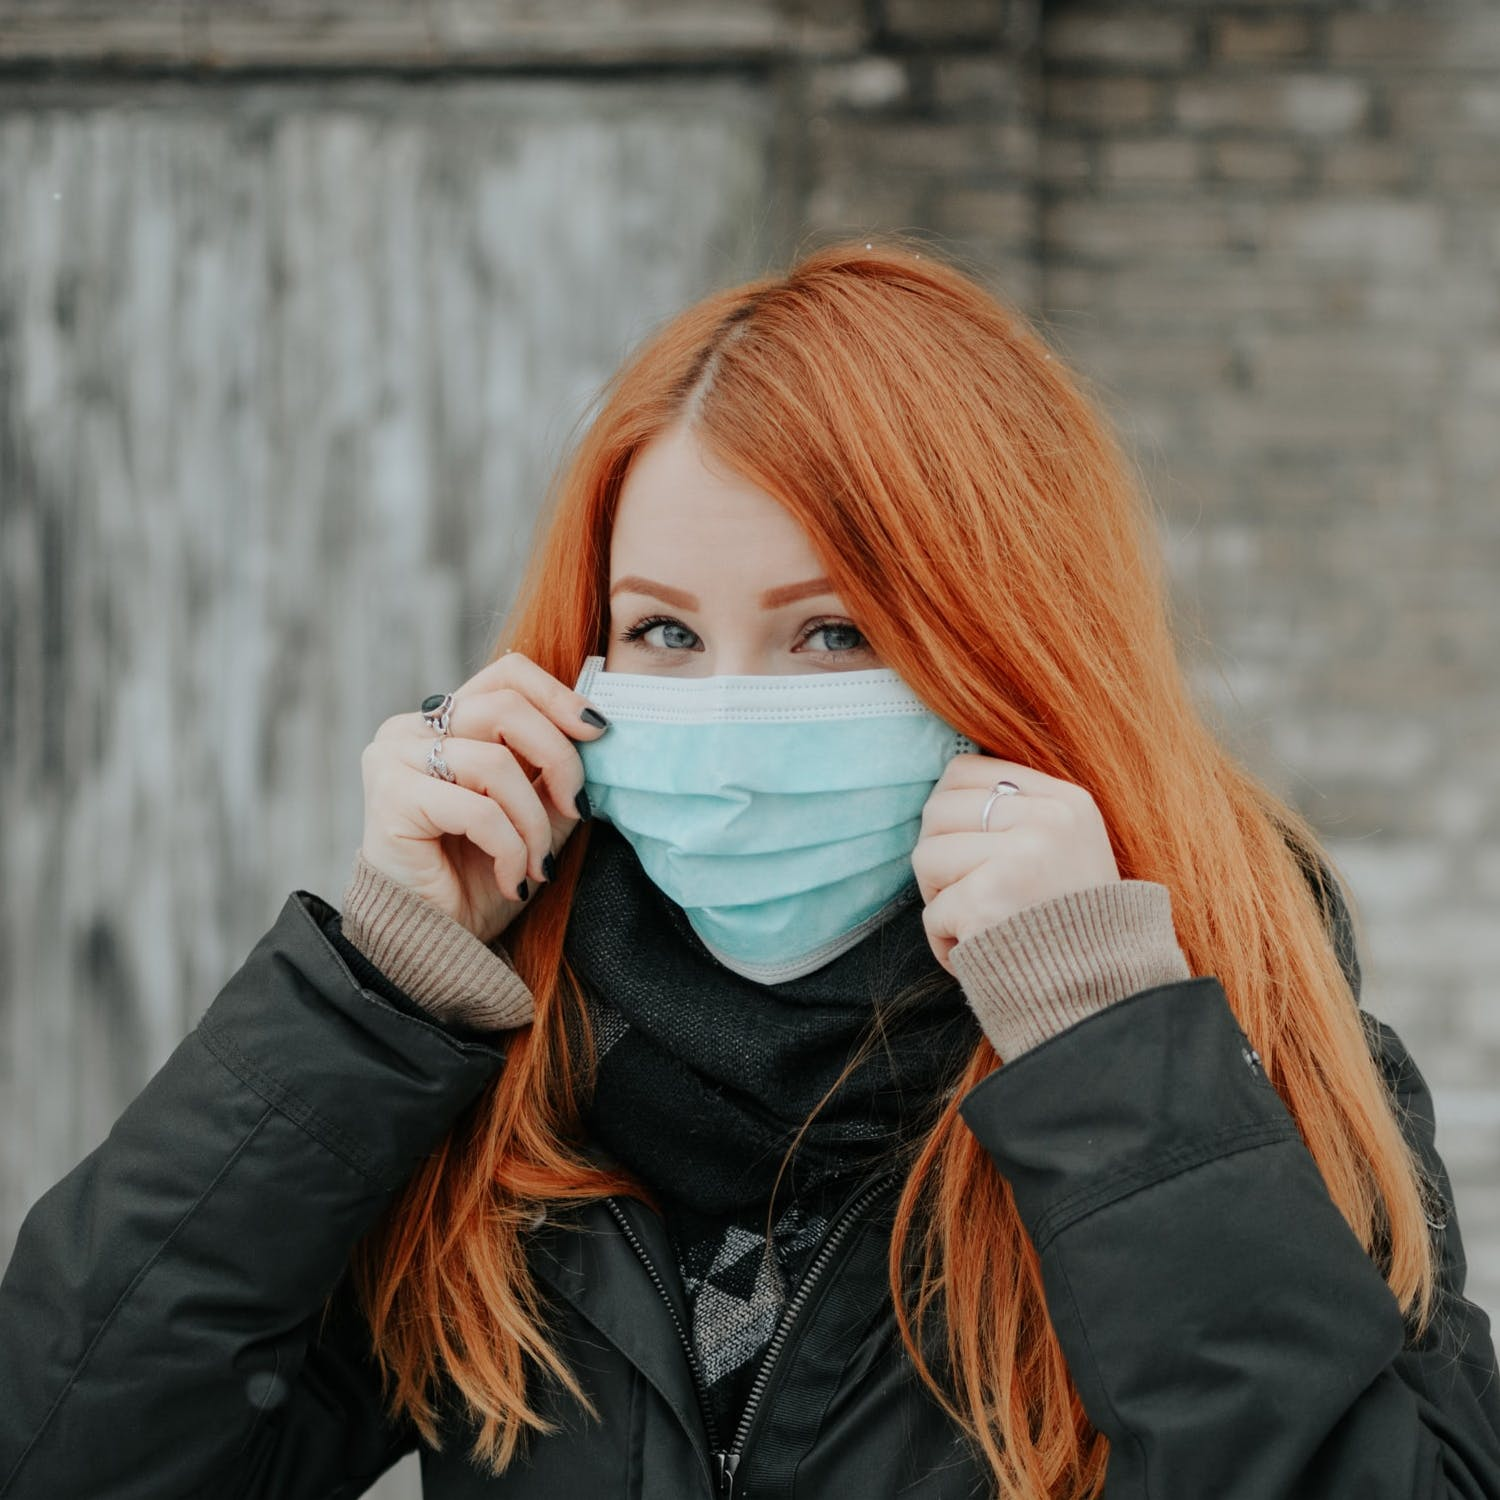 A woman wears a protective mask